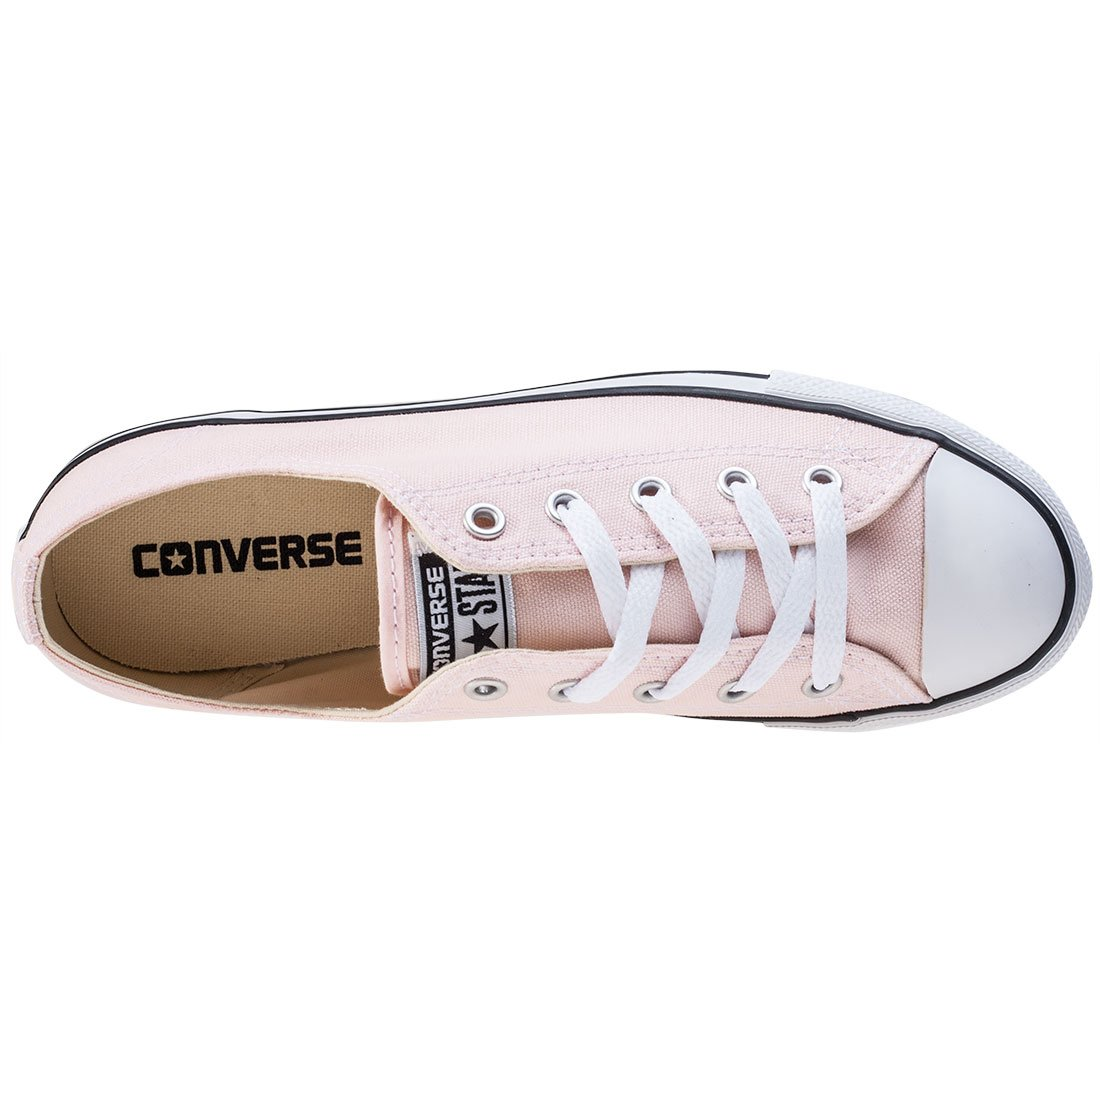 Converse Chuck Taylor All Star Dainty OX 555986C, Turnschuhe Turnschuhe Turnschuhe d52e22